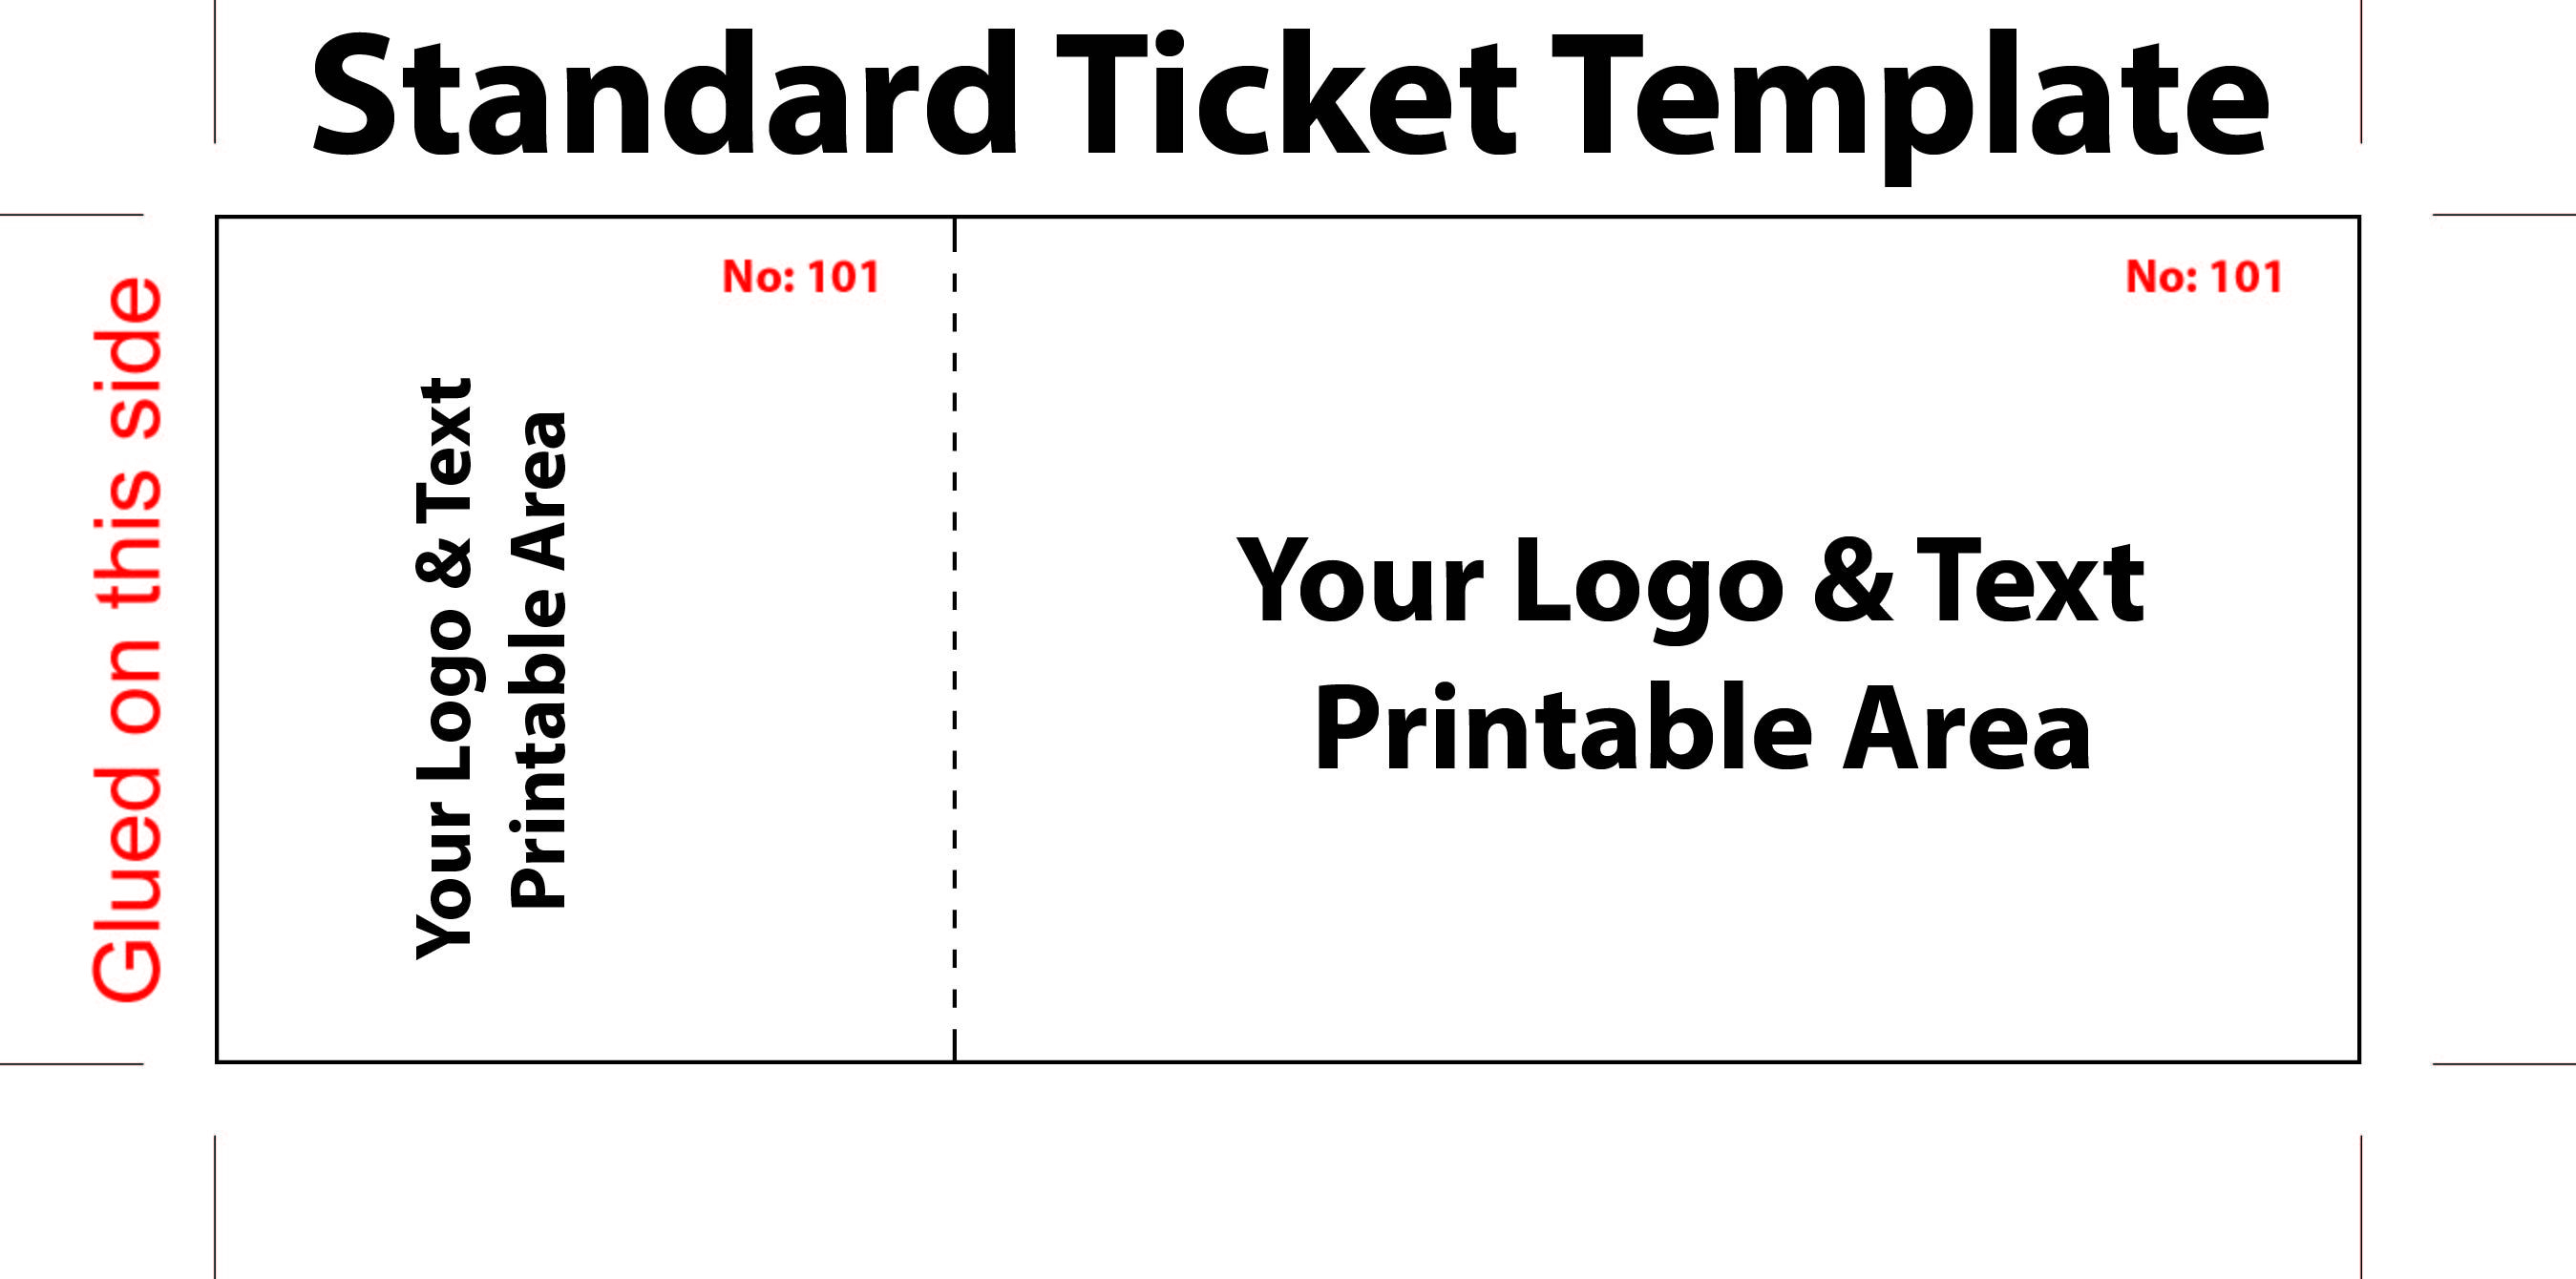 Free Editable Standard Ticket Template Example For Concert With Logo - Free Printable Tickets